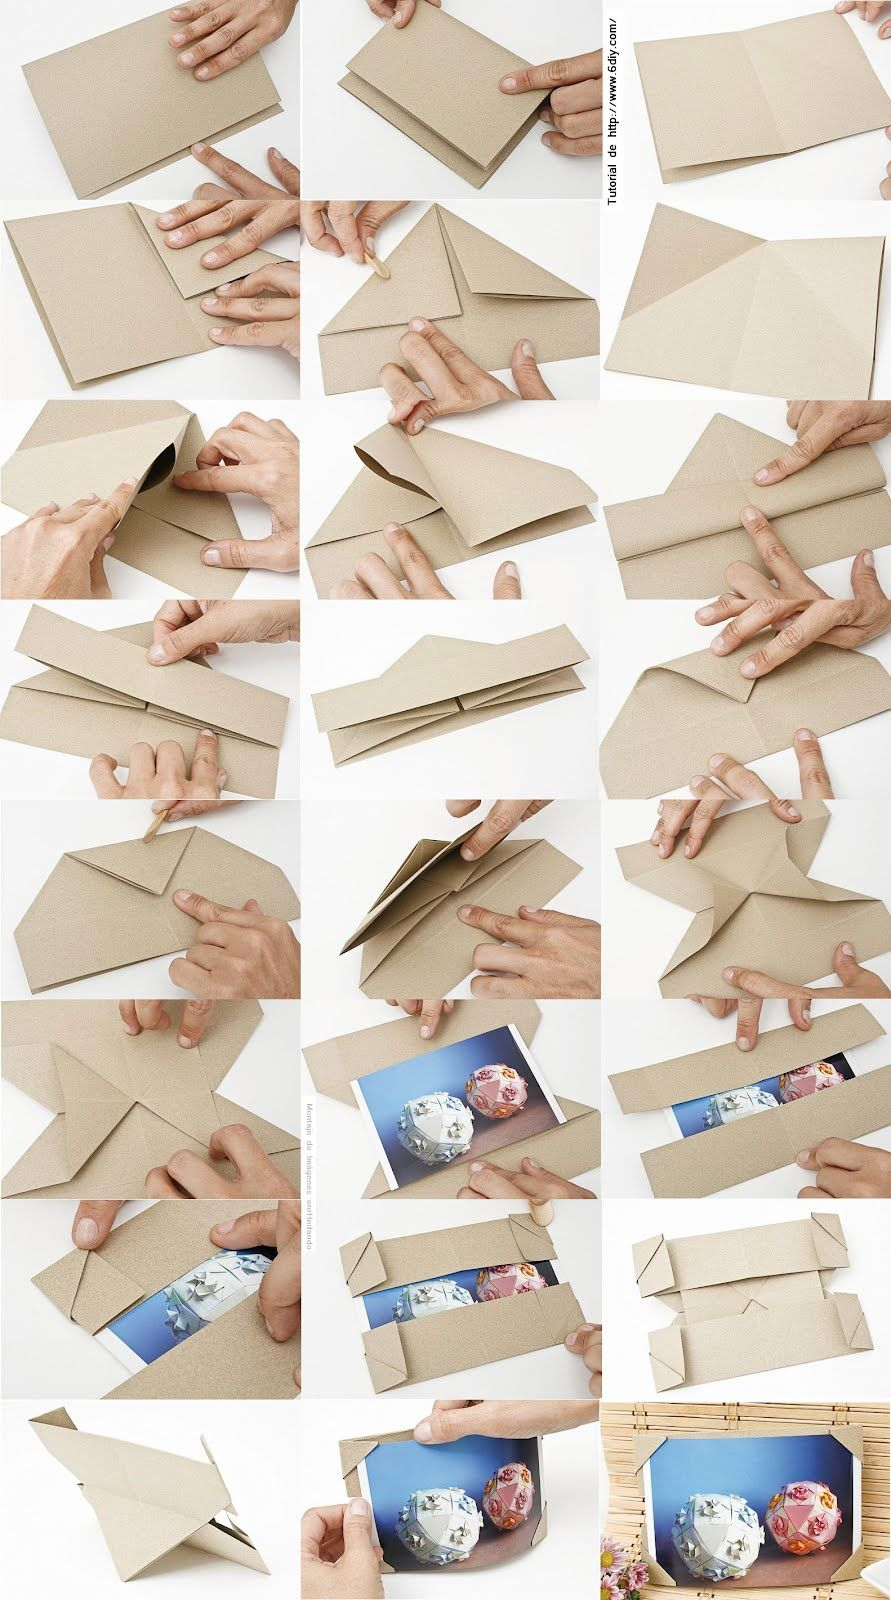 en-rhed-ando | Origami, Craft and Origami paper